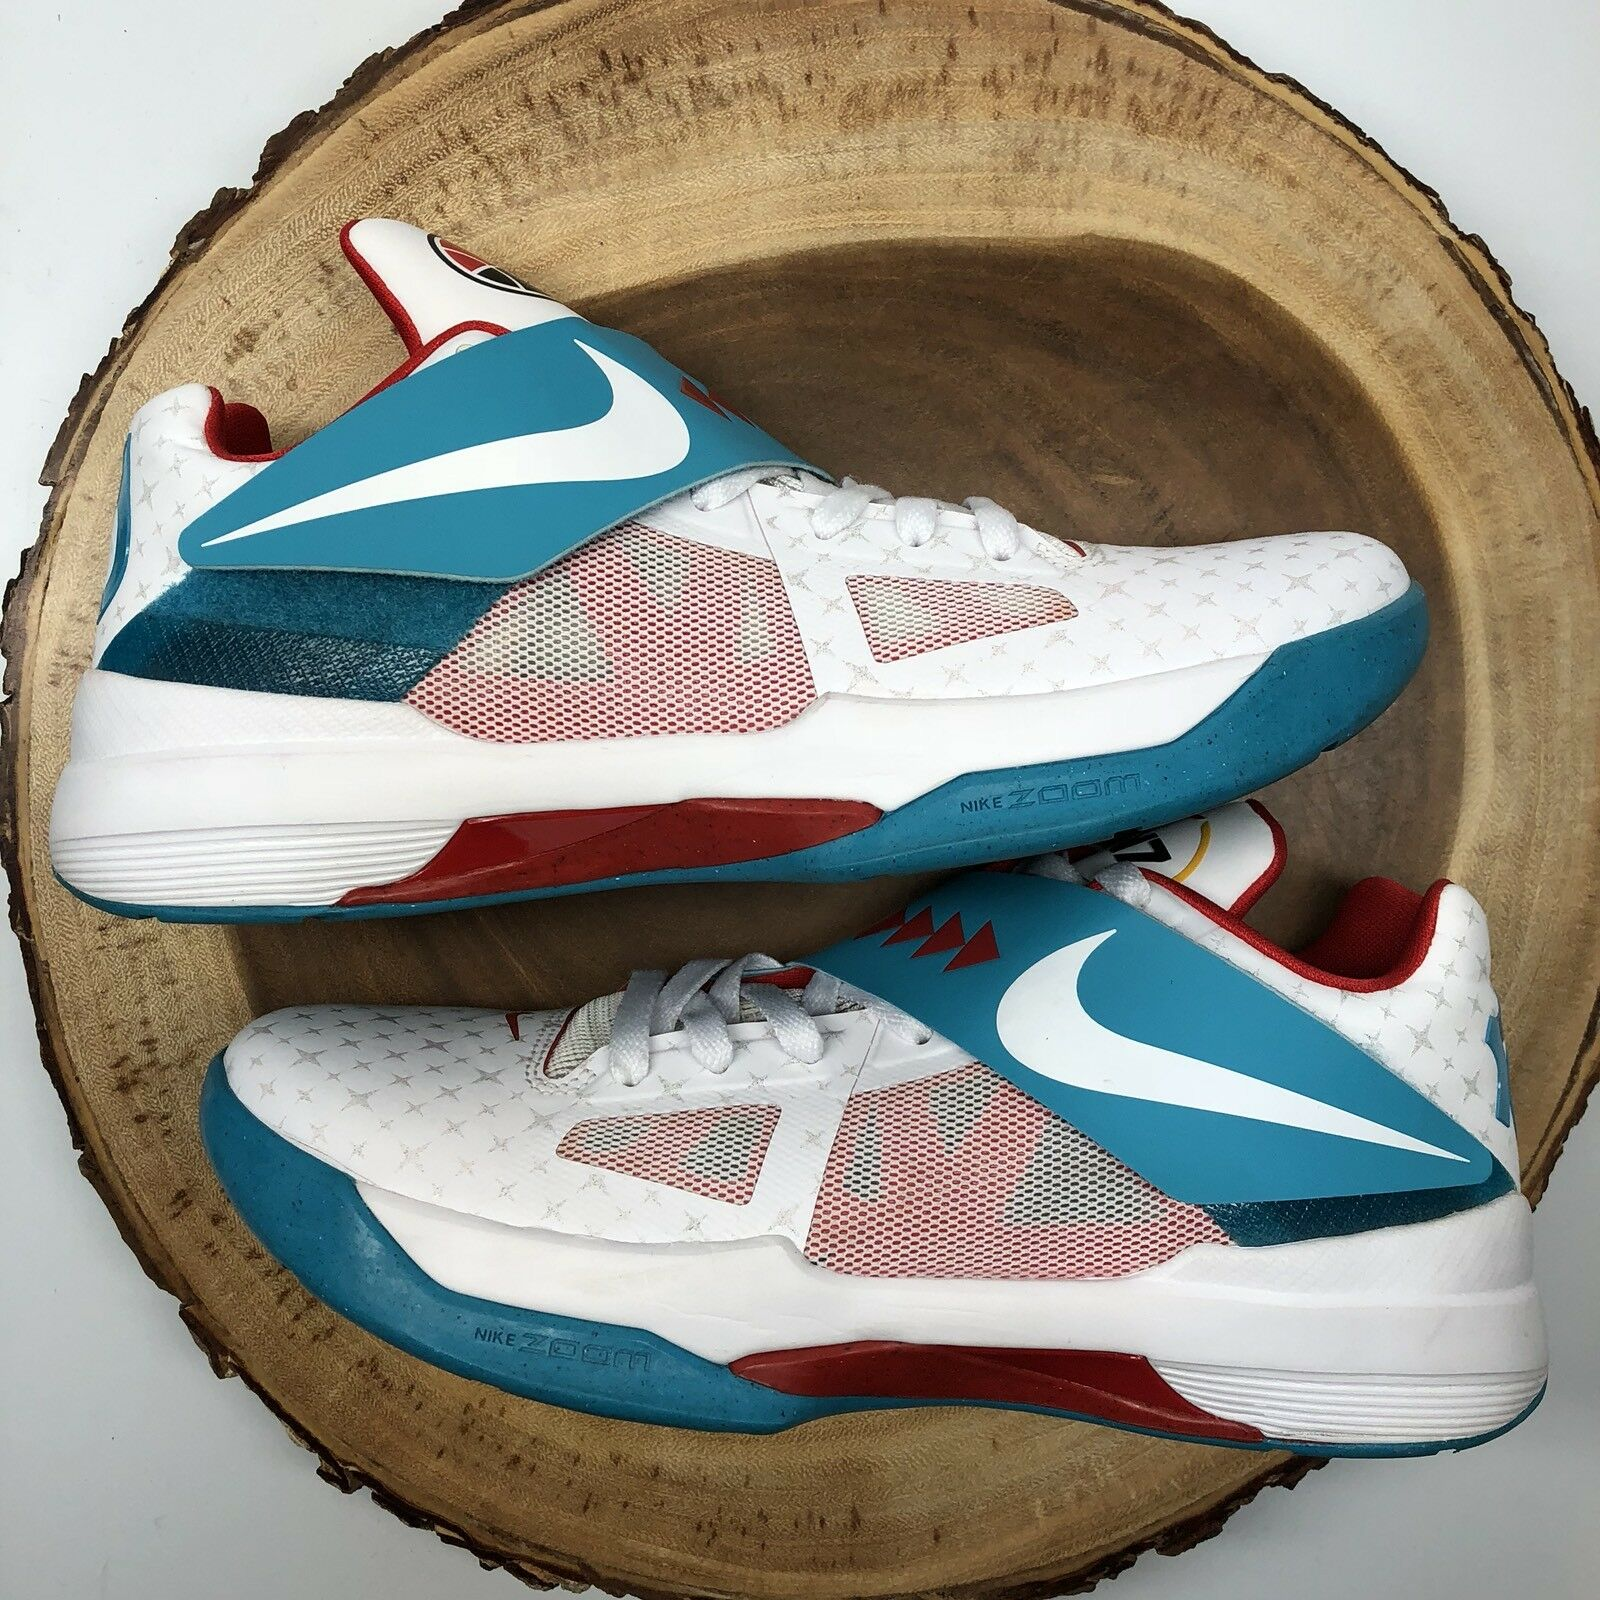 2012 Nike Zoom KEVIN DURANT KD IV 4 N7 HOME WHITE TURQUOISE BLUE RED BLACK 9.5